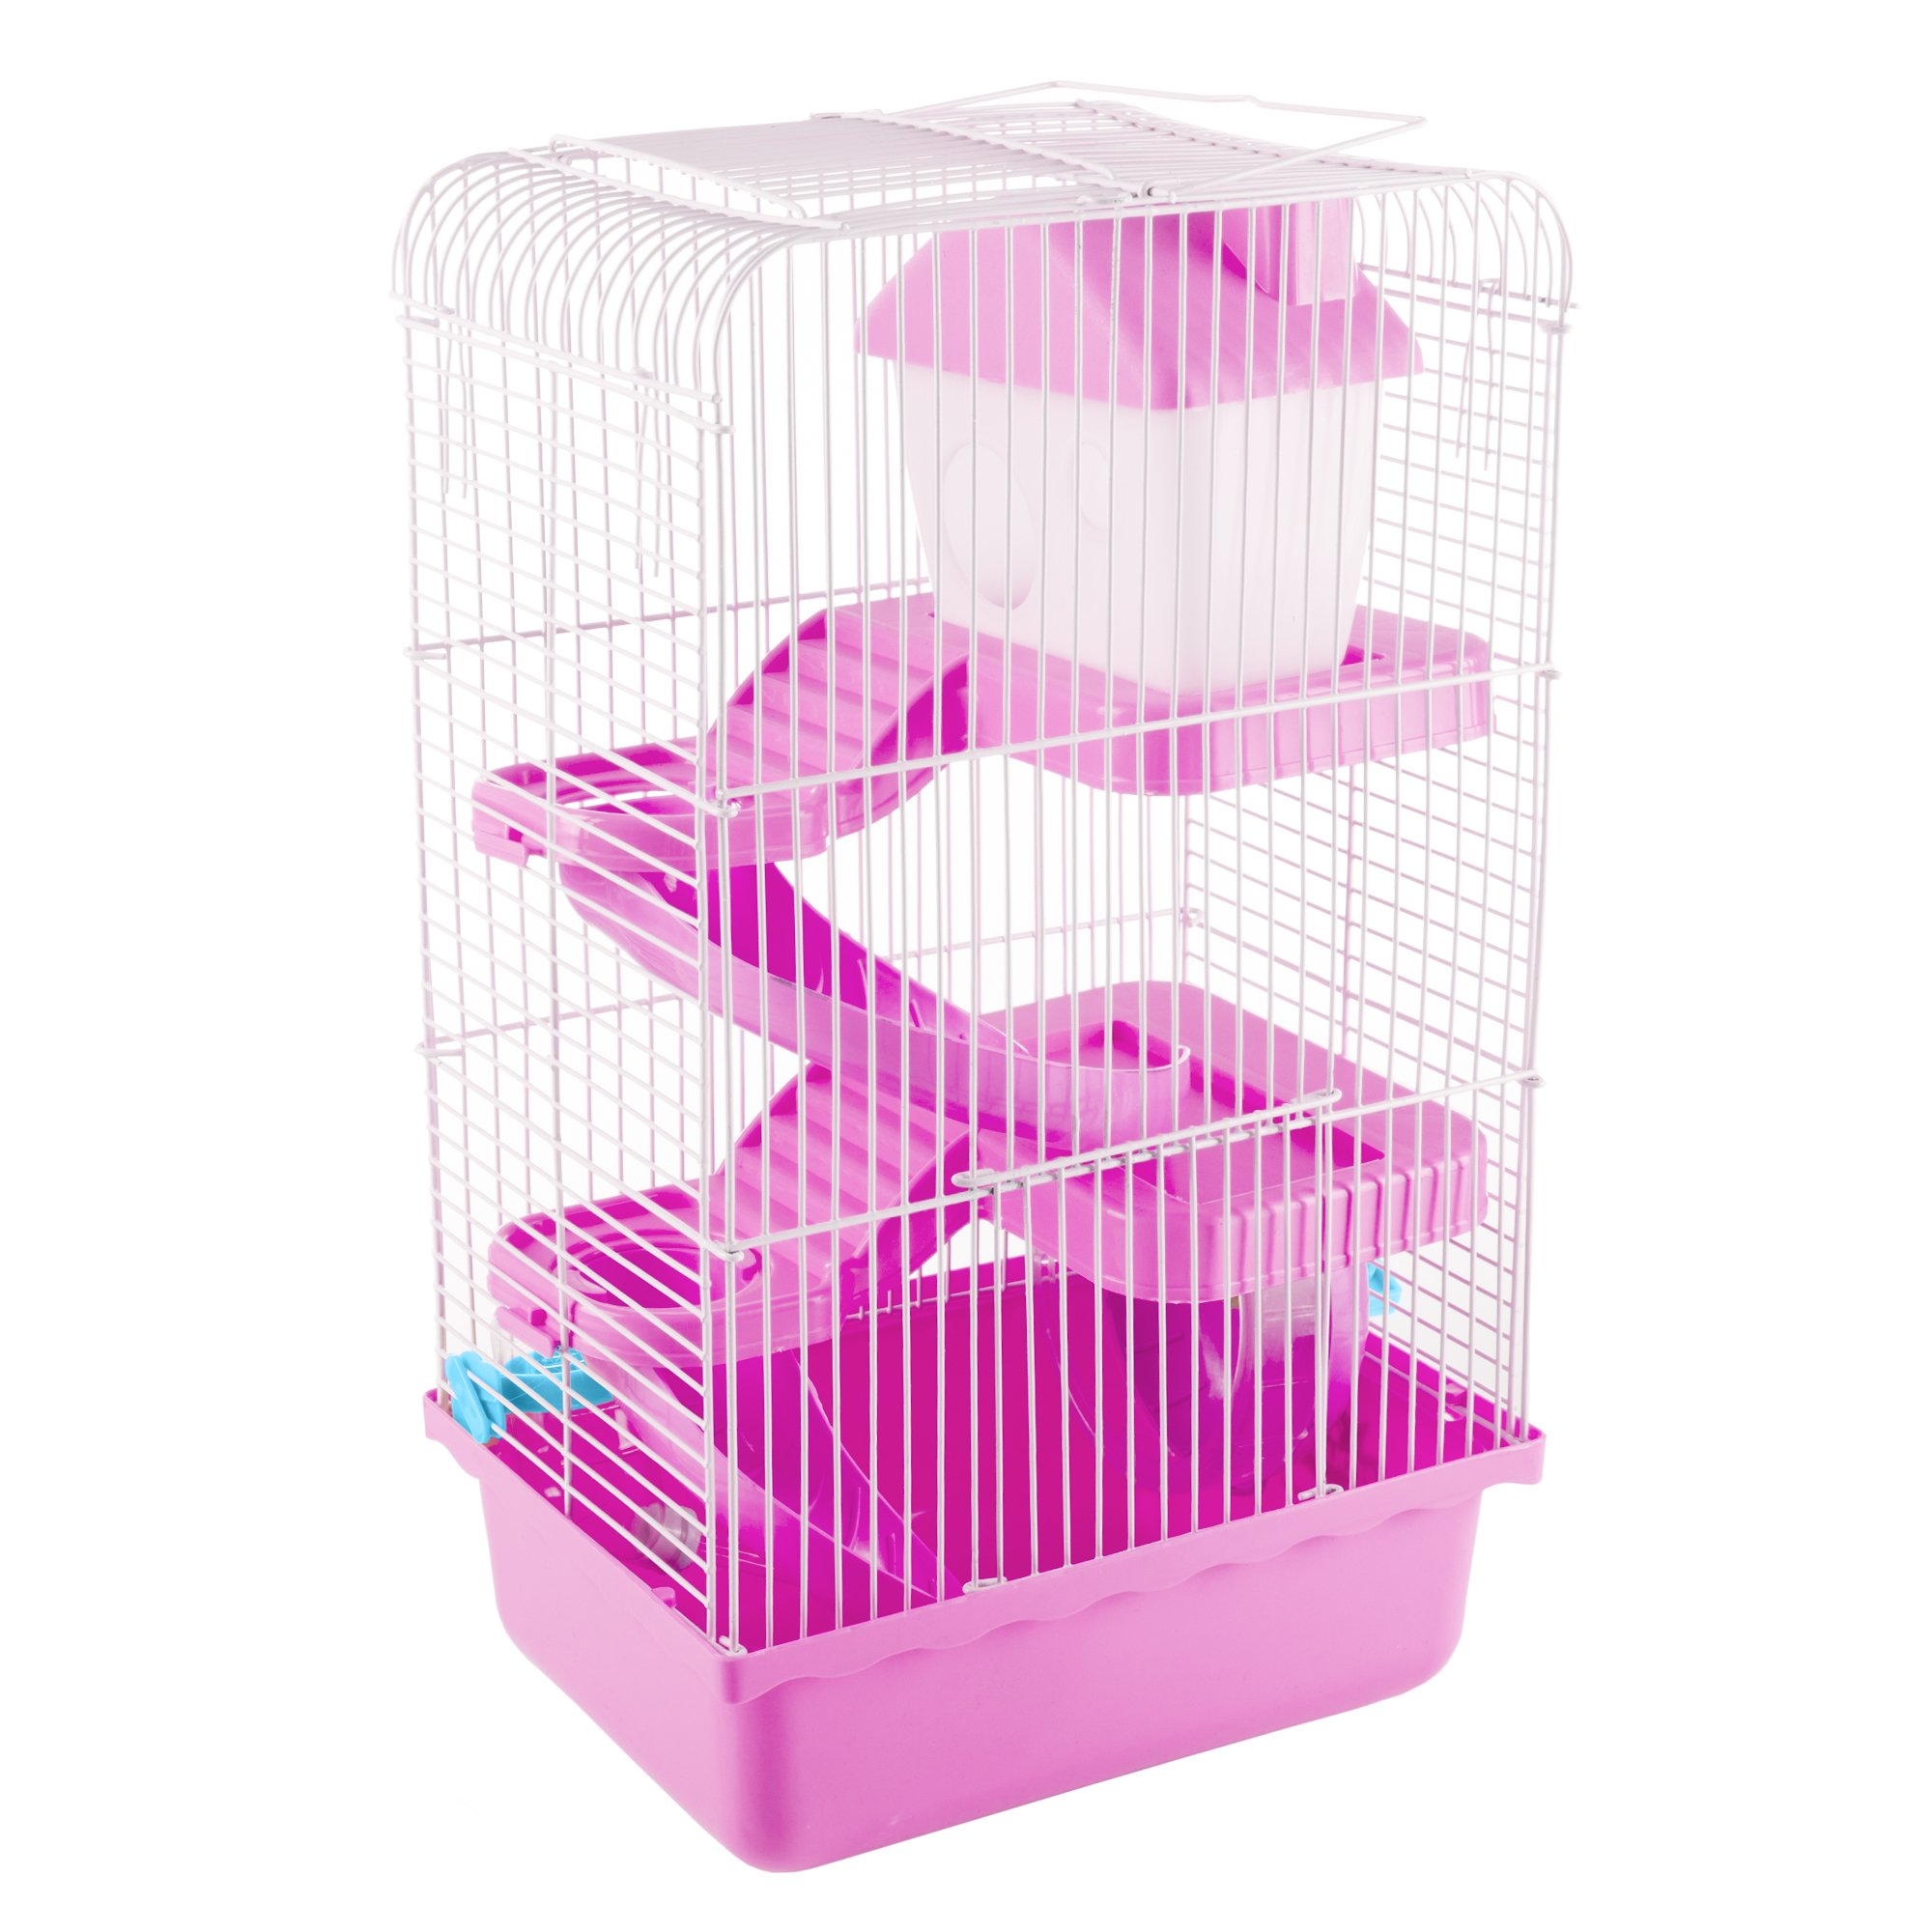 PETMAKER Hamster Cage Habitat, Critter/Gerbil/ Small Animal Starter Kit with Attachments/Accessories- Water Bottle, Tunnel Ladders, Wheel (Pink)